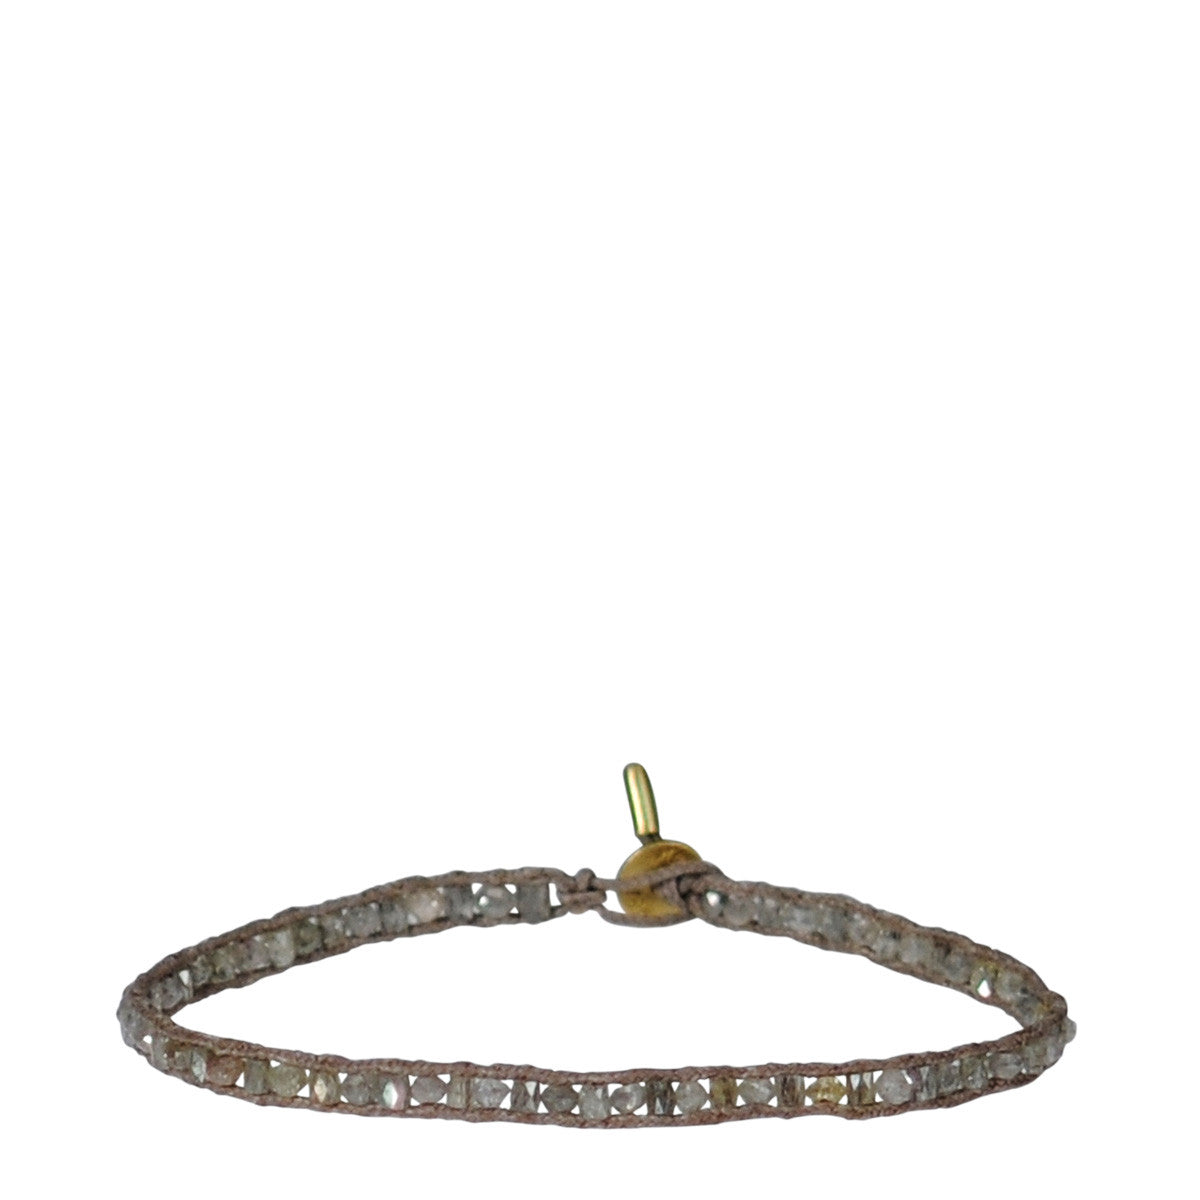 18K Gold Single Row Tube and Rondelle Bracelet with Grey Diamonds